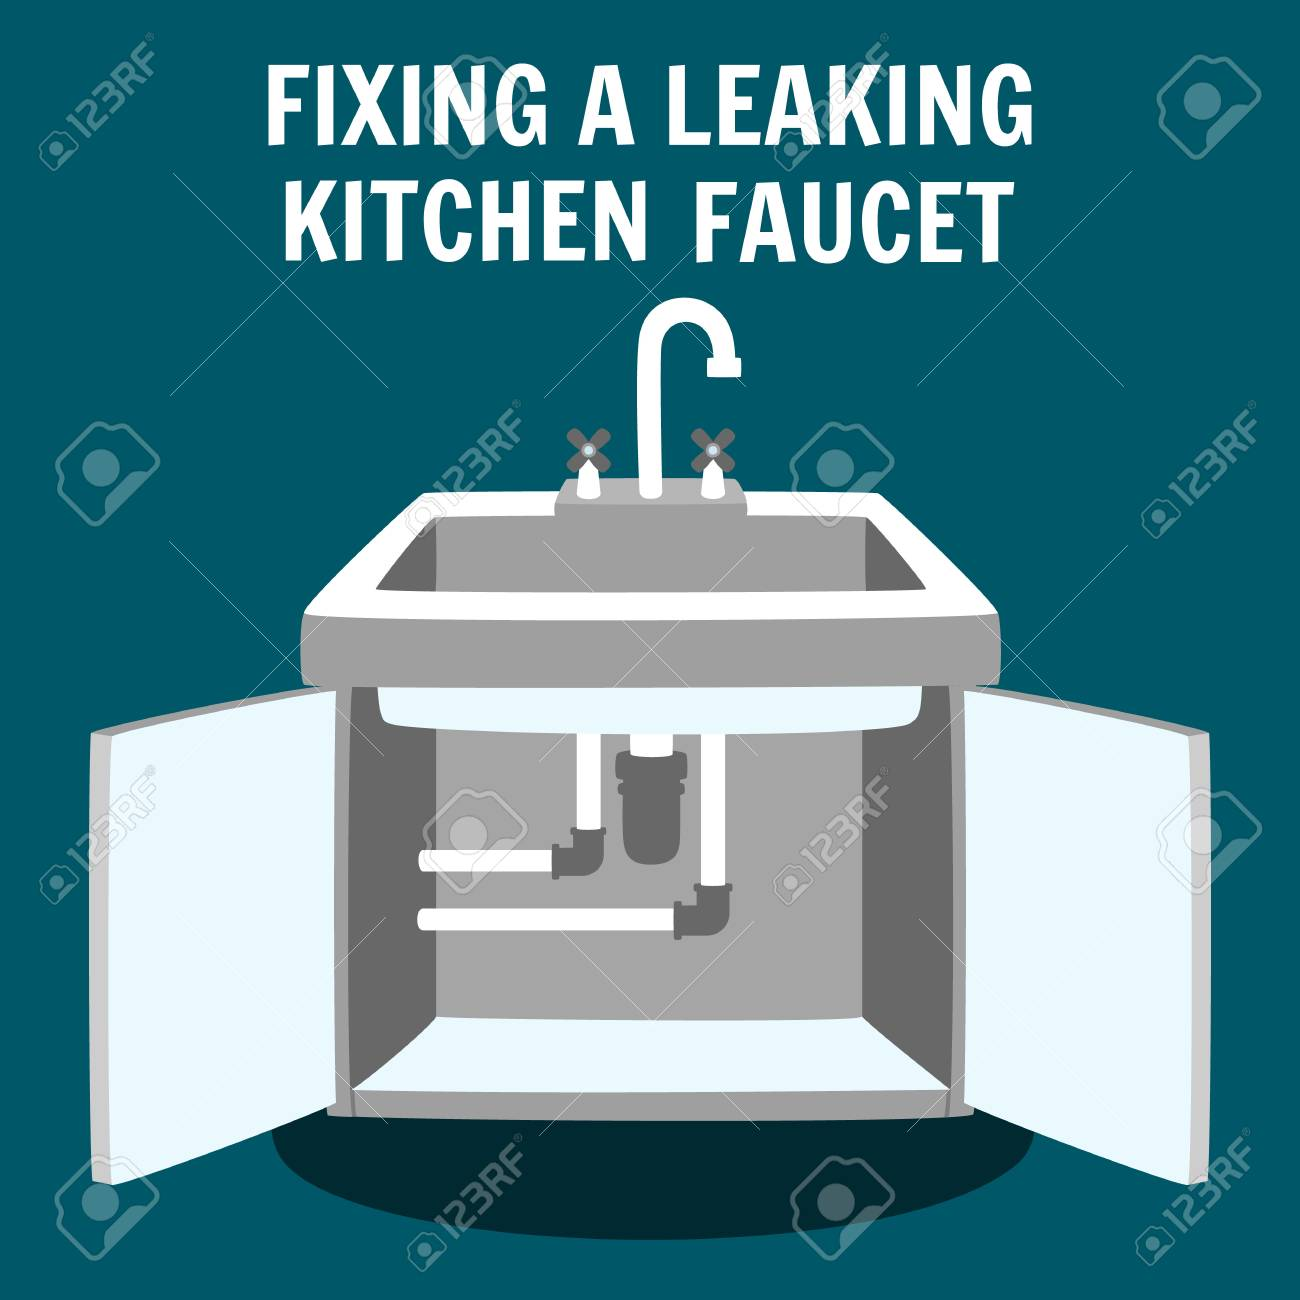 fixing leaking kitchen faucet banner professional plumbing service